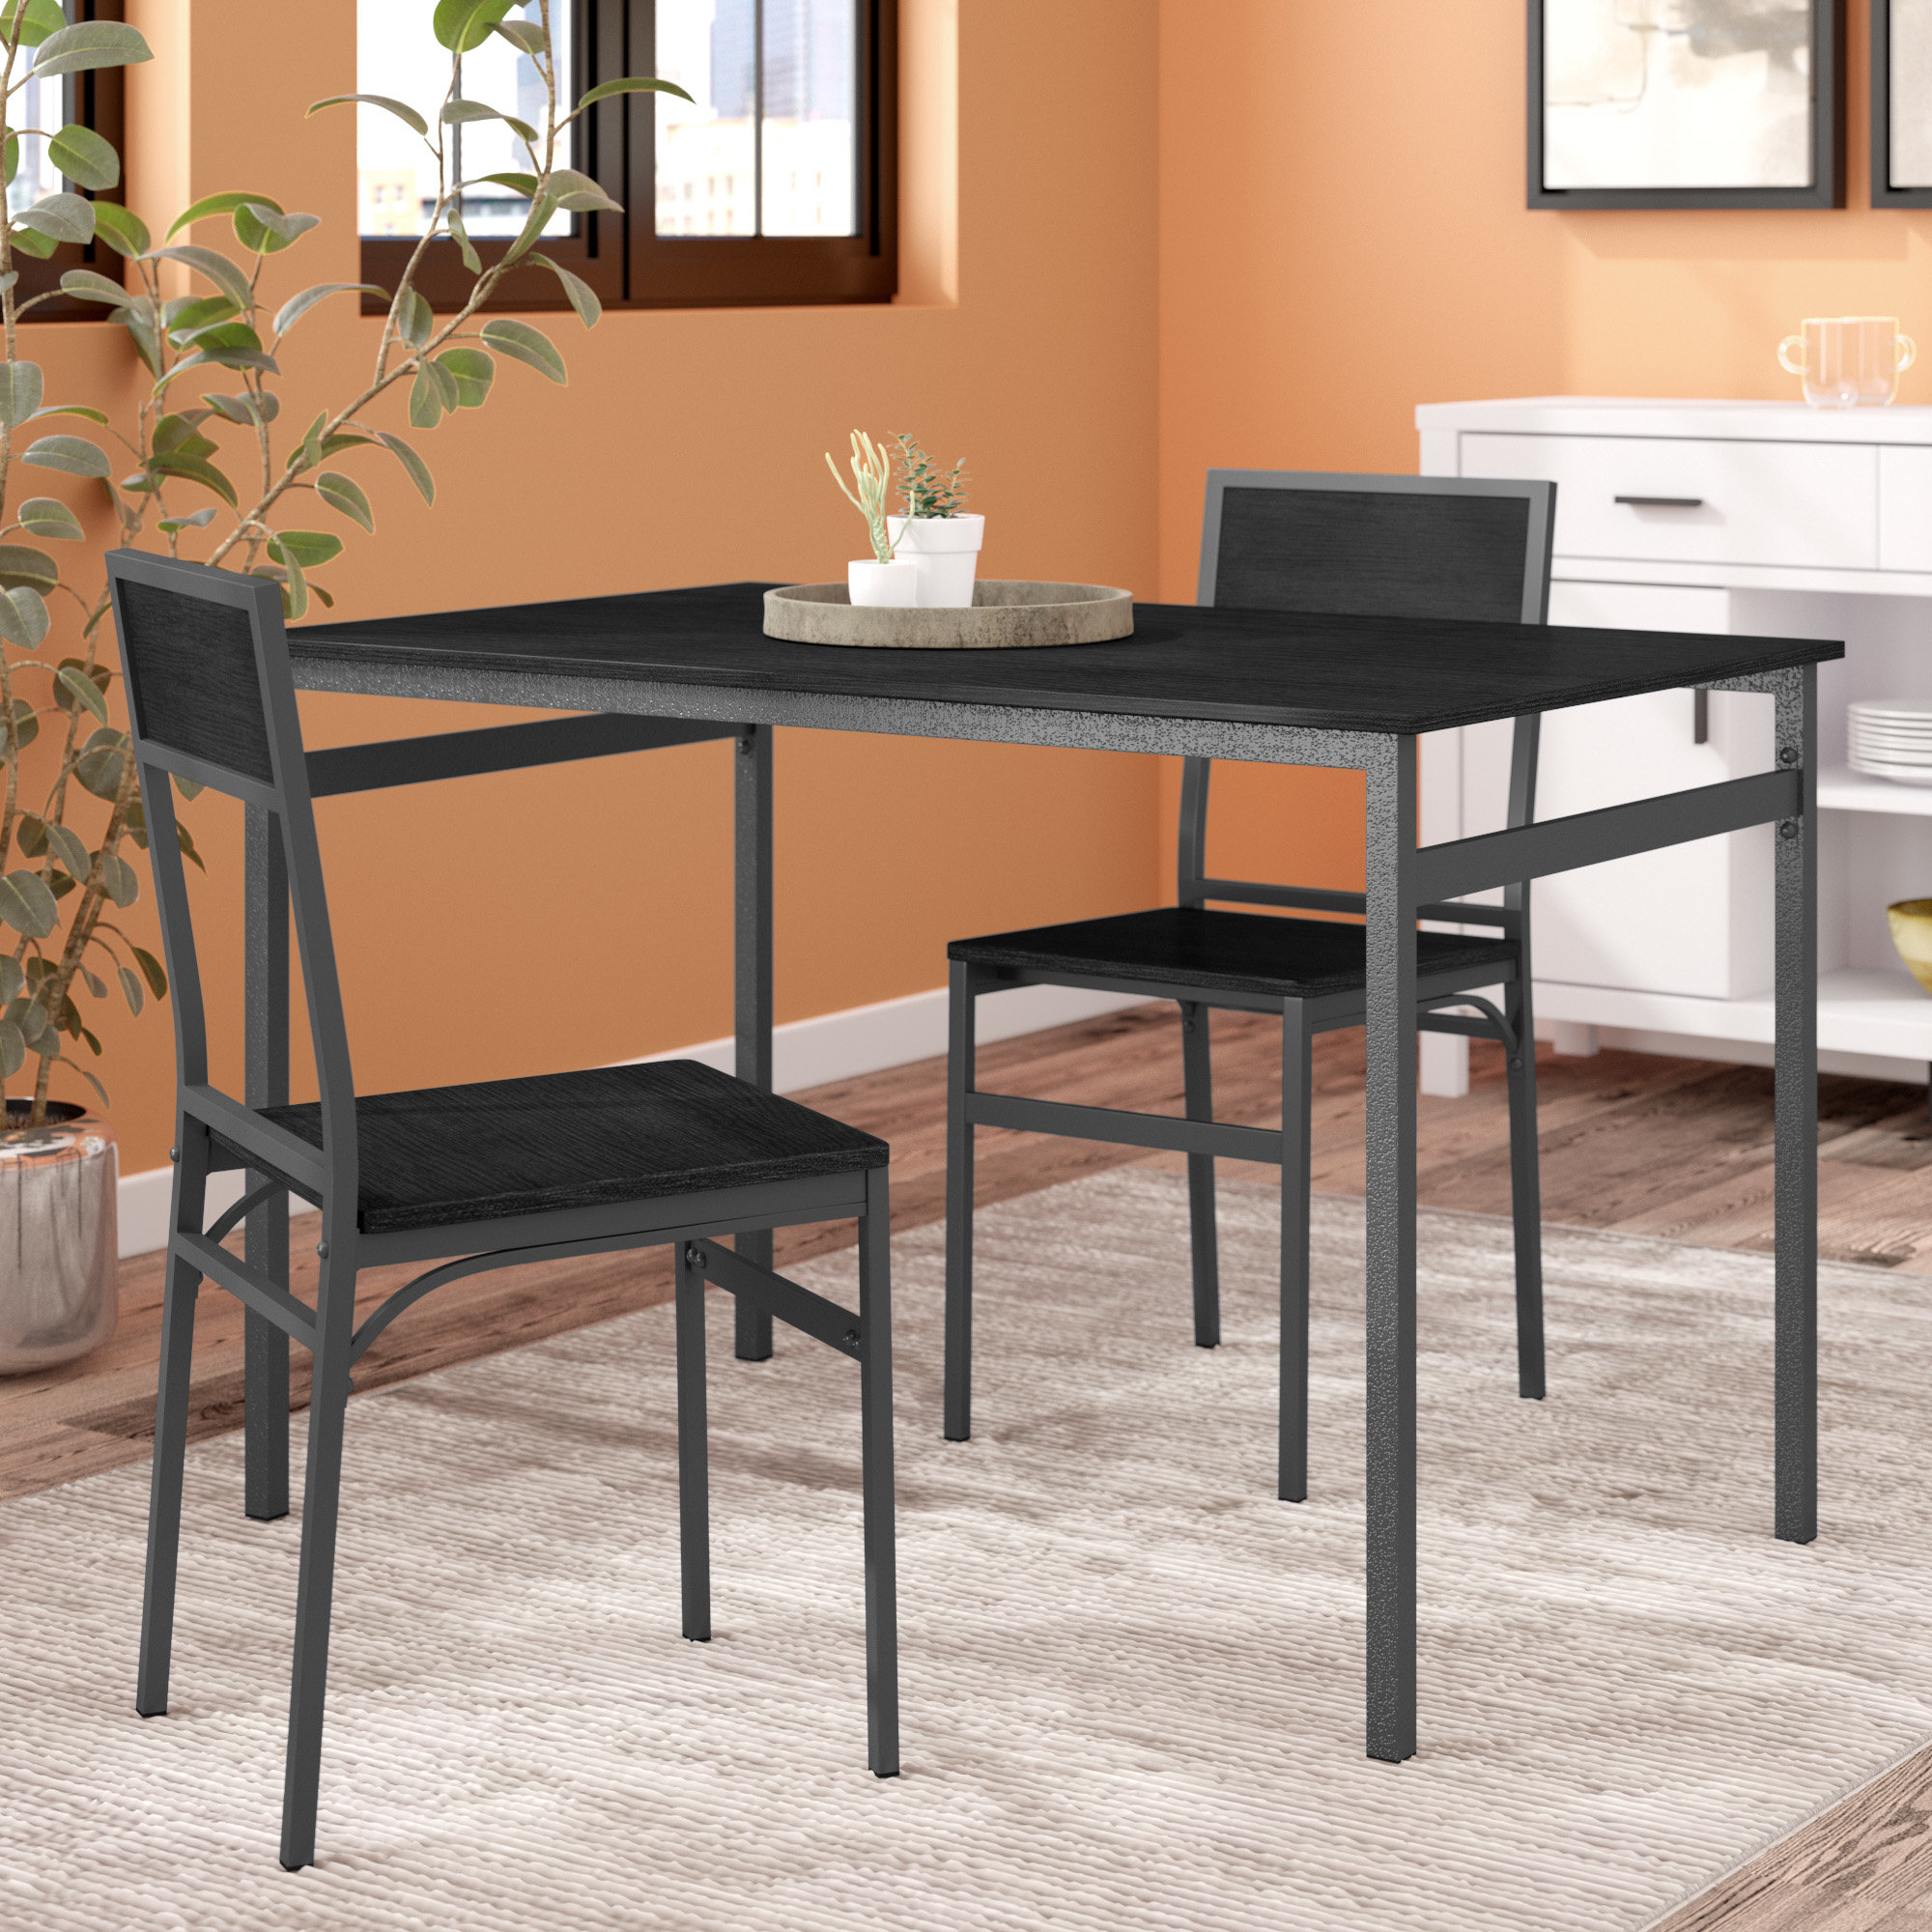 Springfield 3 Piece Dining Set Pertaining To Most Recently Released Mizpah 3 Piece Counter Height Dining Sets (View 13 of 20)